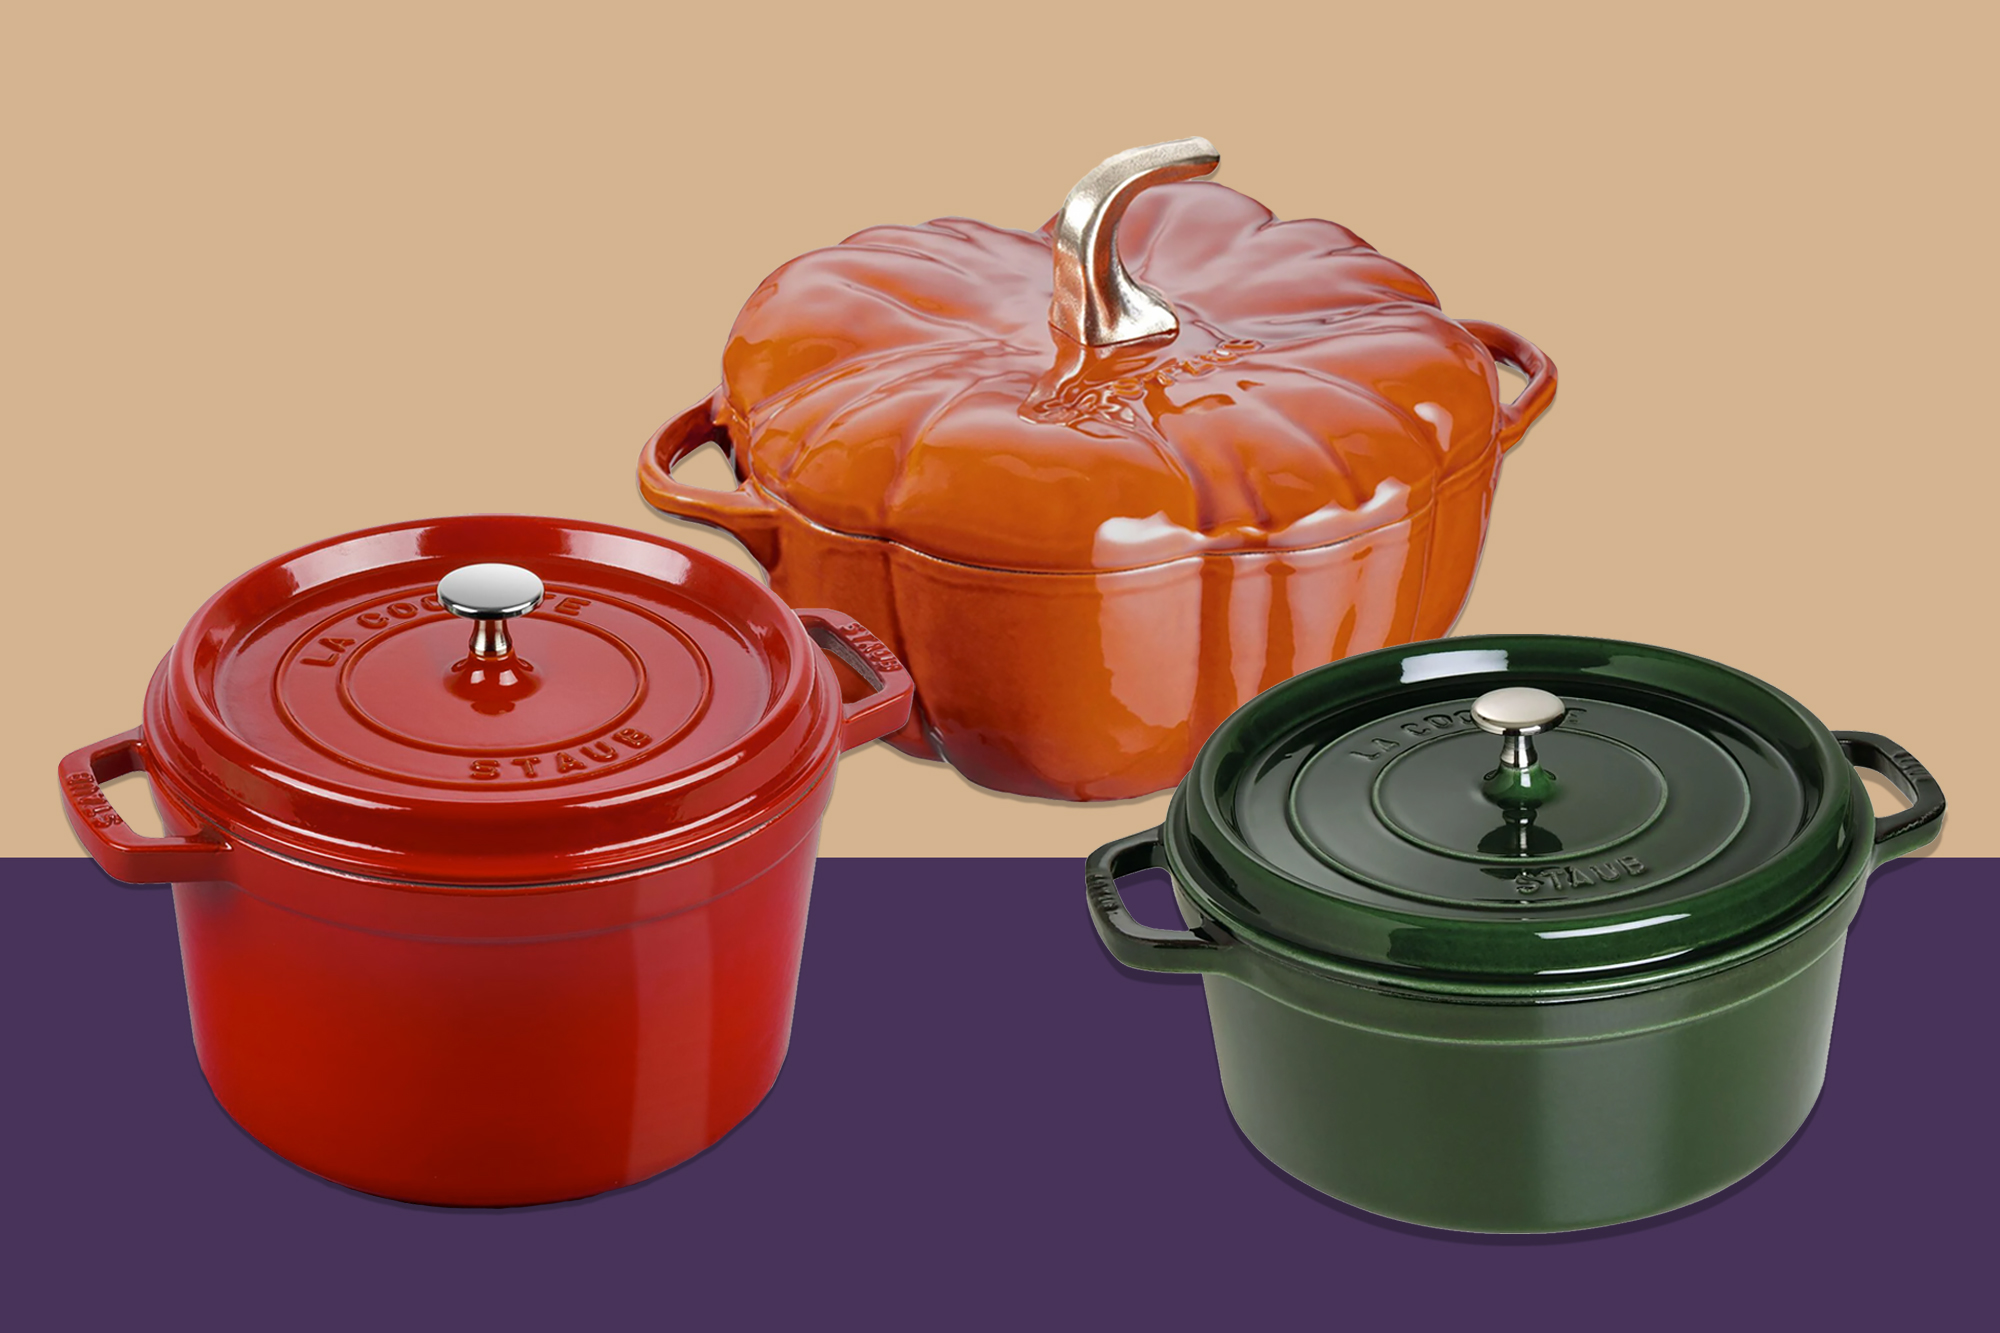 Staub dutch ovens in various colors